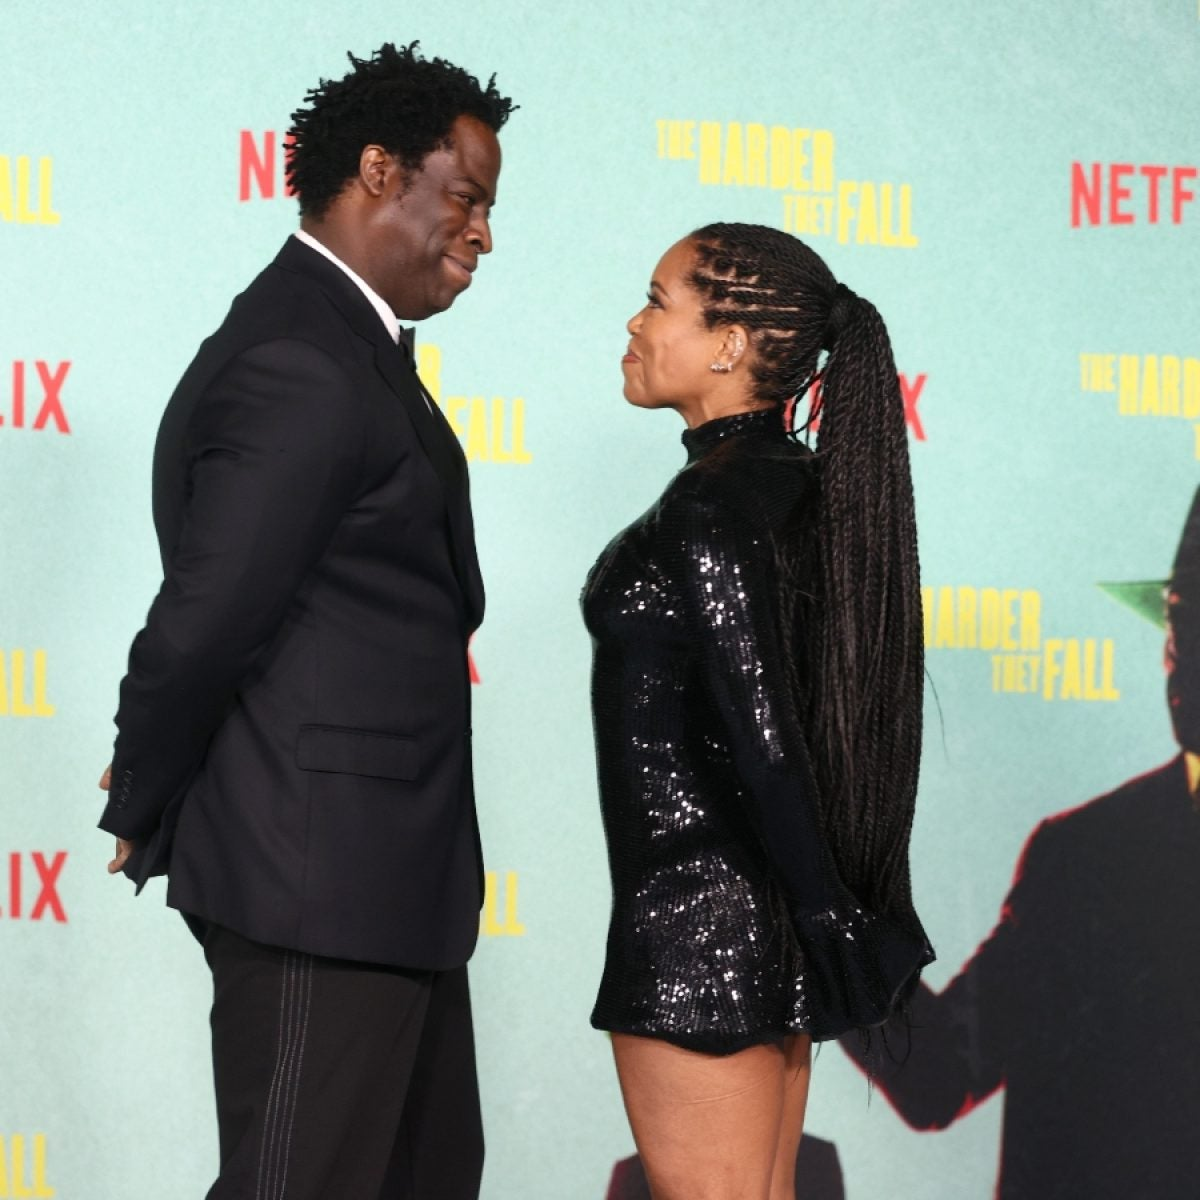 Celebs Celebrate 'The Harder They Fall' For Its Portrayal Of Black Women & Cowboys